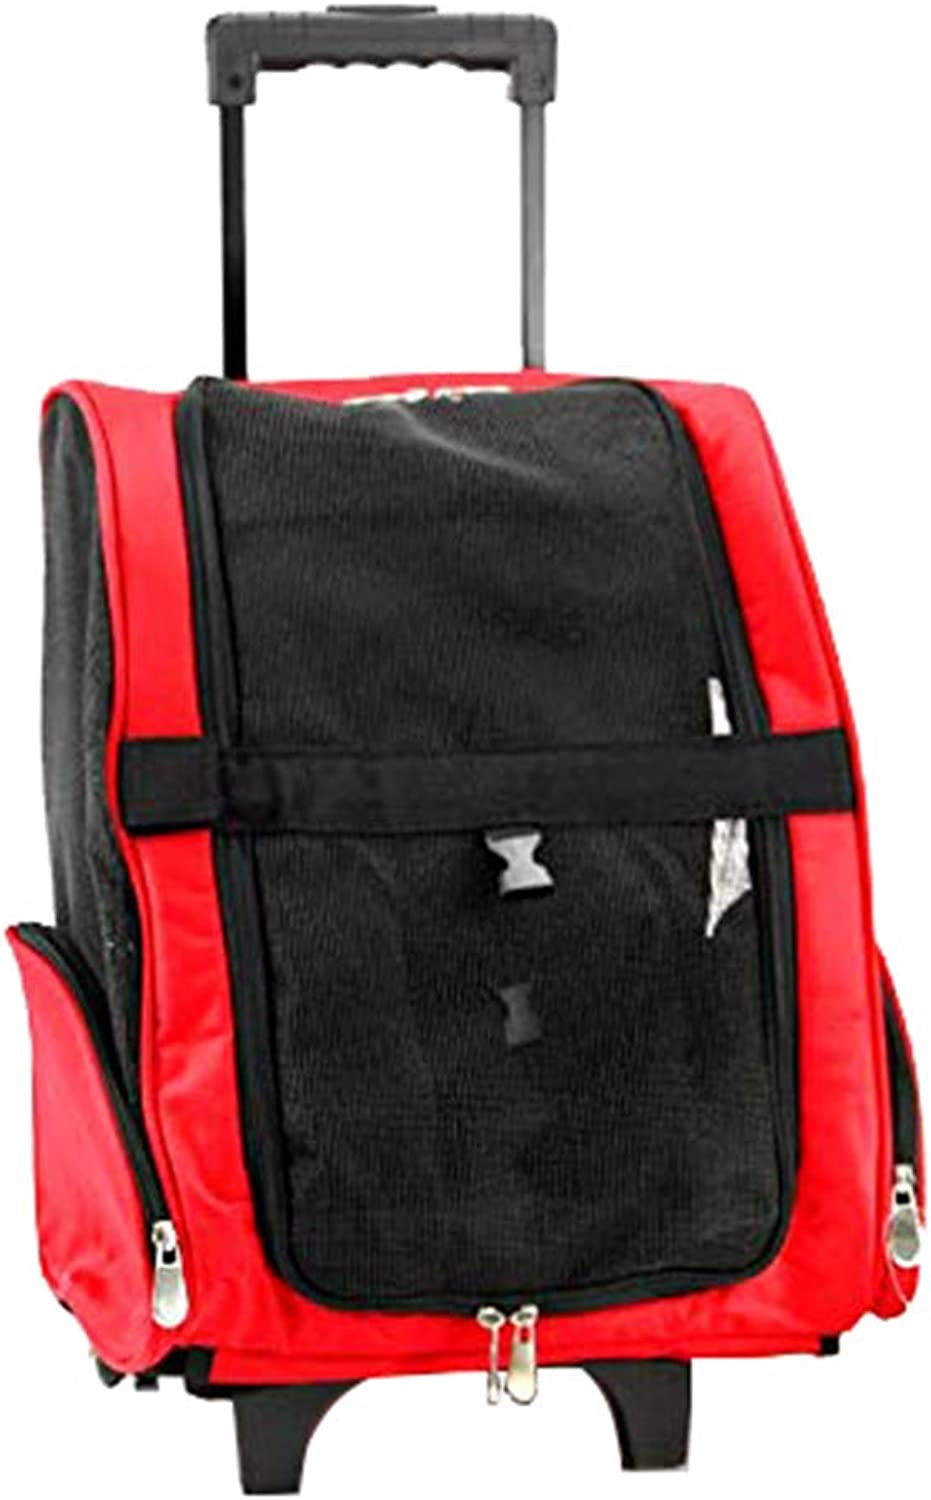 Roller Backpack, Pet Carrier with Rolling Wheels, Mesh Ventilation, with Extendable Handle, Lightweight Dog and Cat Carrier